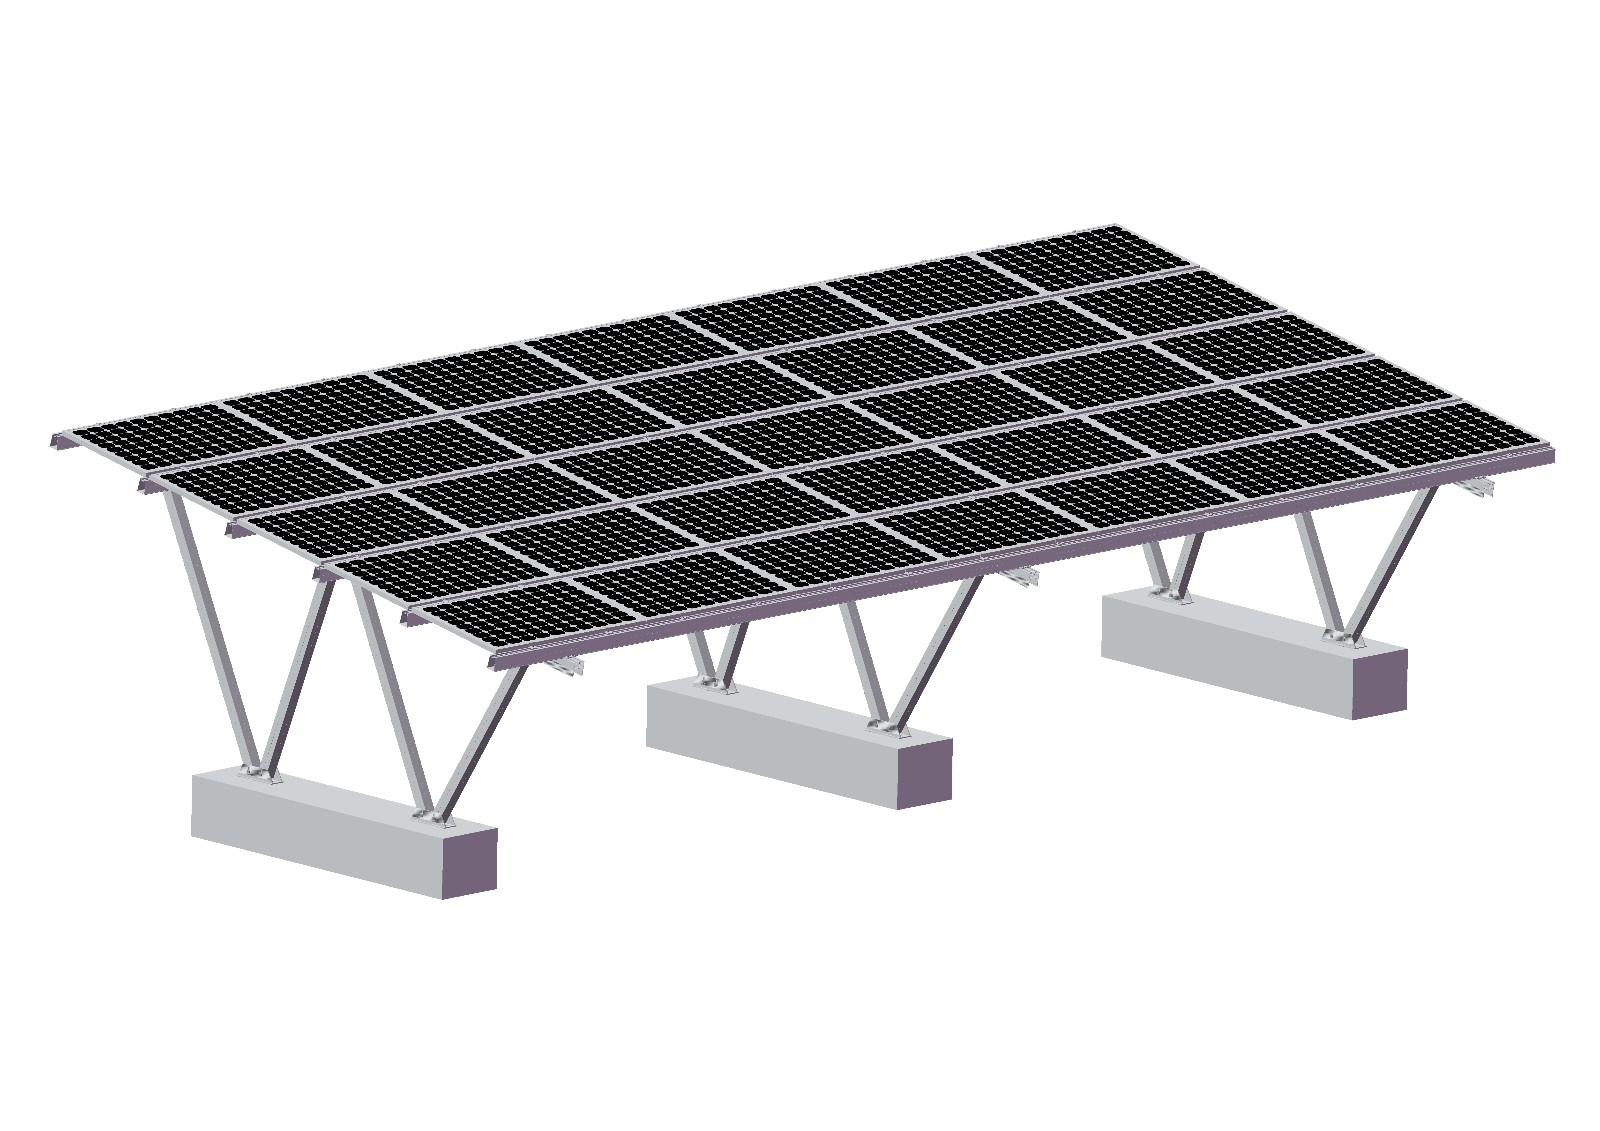 Double Cars Carport Solar Racking System Manufacturers, Double Cars Carport Solar Racking System Factory, Supply Double Cars Carport Solar Racking System